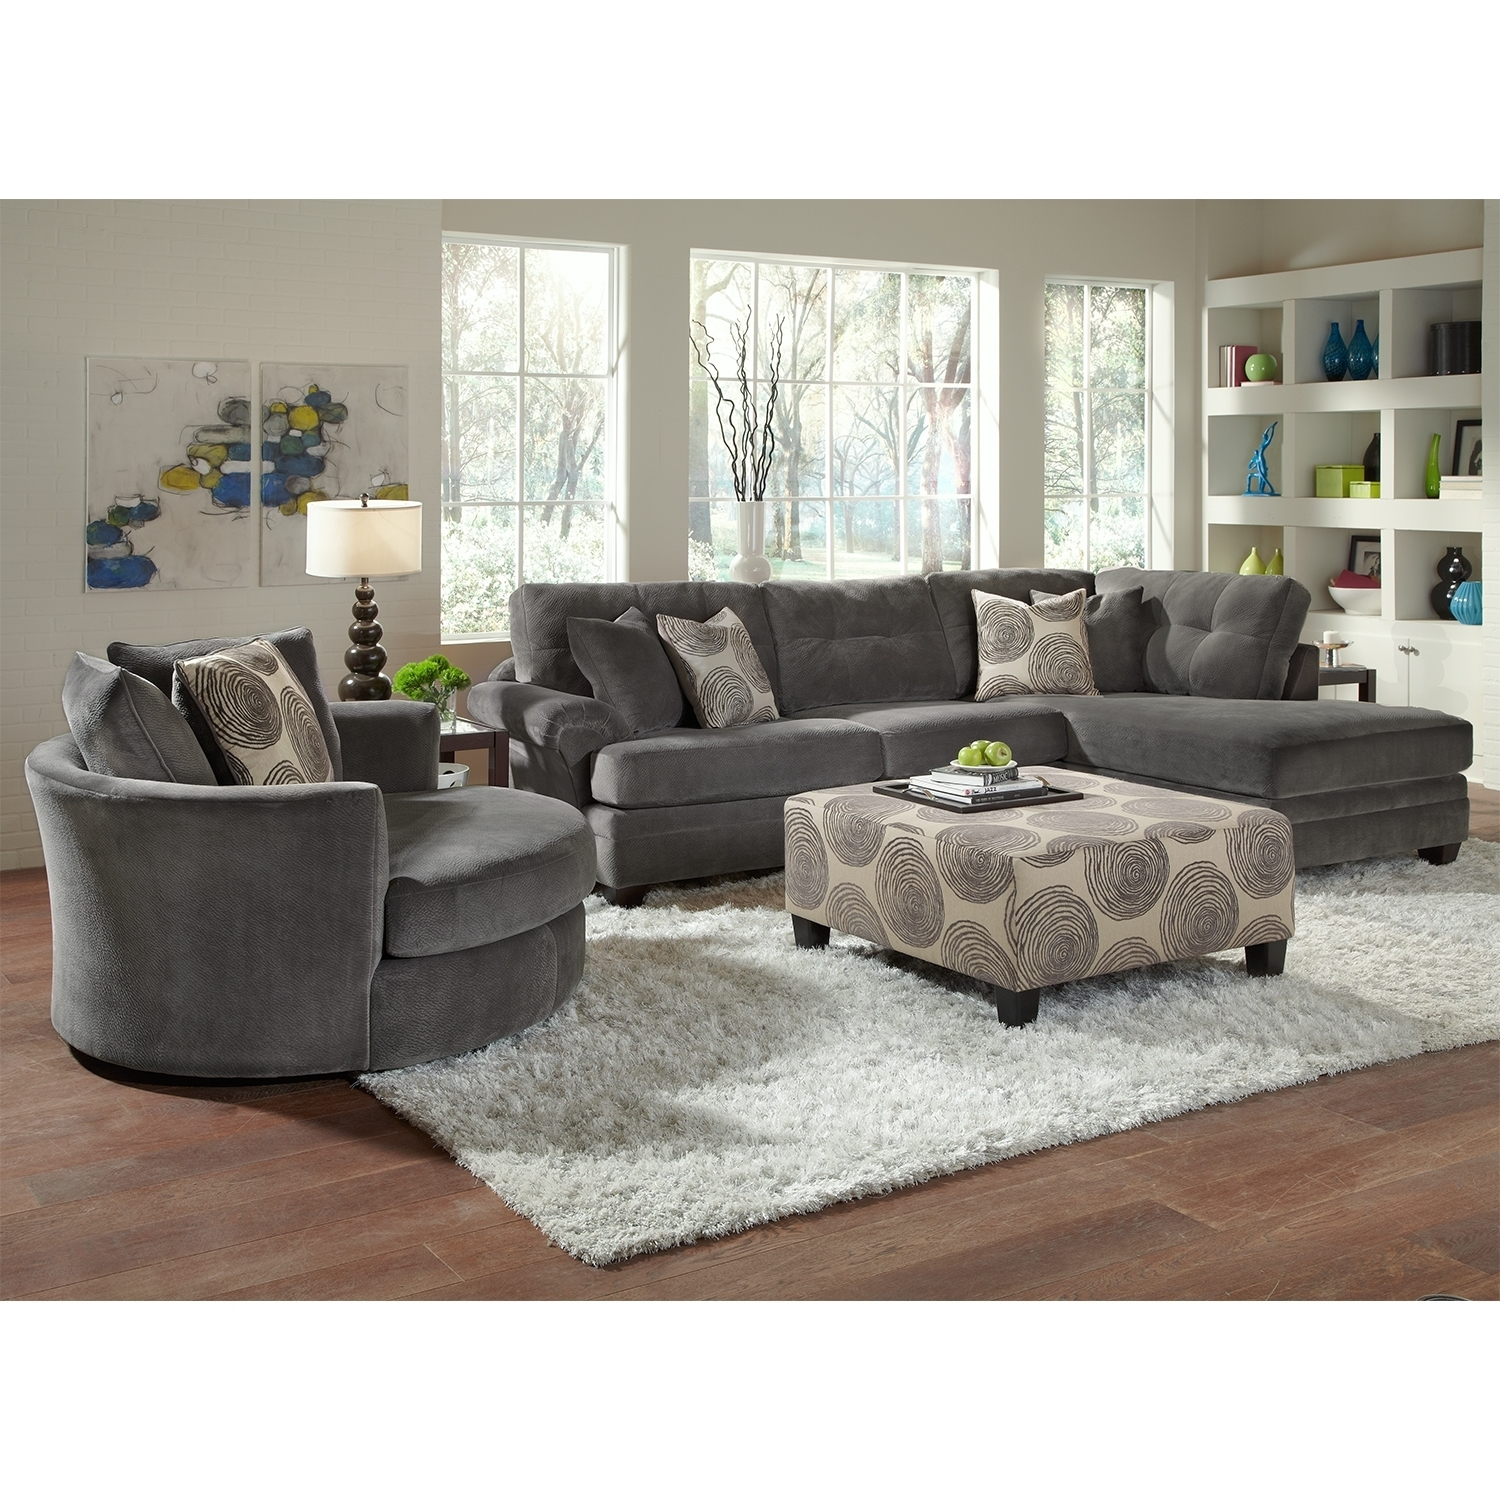 Impressive Rooms To Go Ottoman Sectional Sofa Design Value City Set In Rooms To Go Sectional Sofas (View 9 of 10)